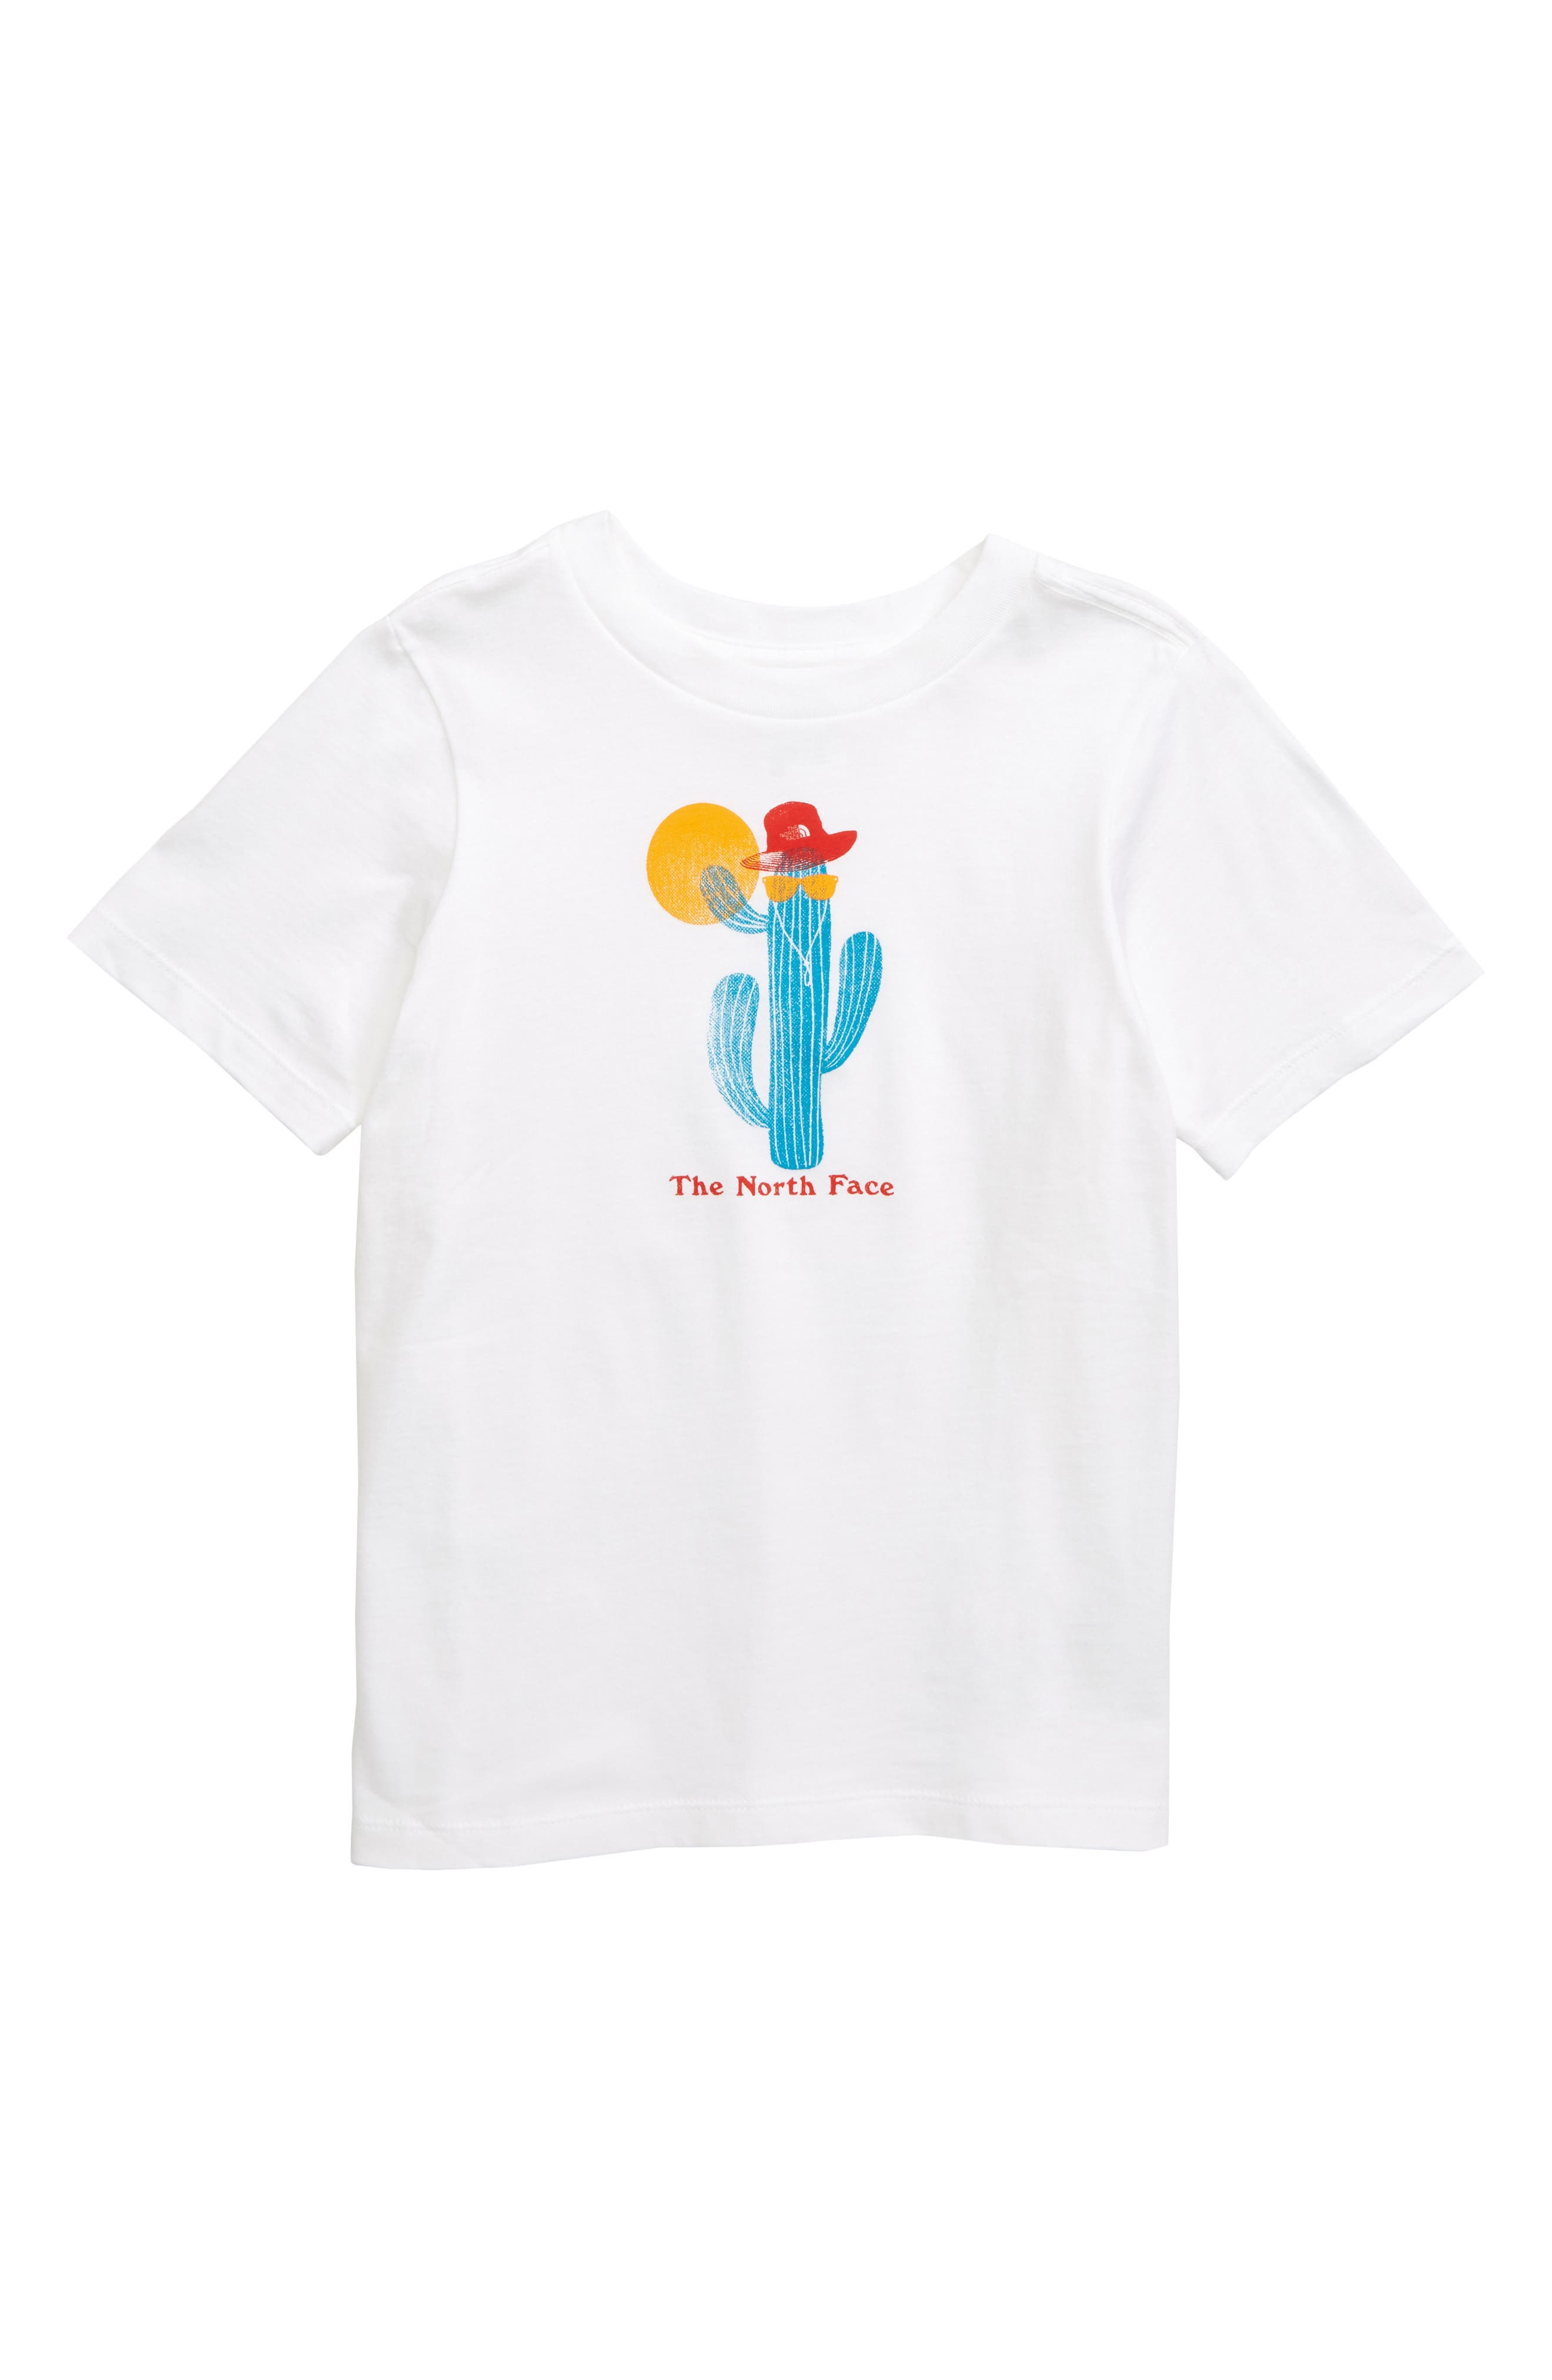 THE NORTH FACE, Logo Graphic T-Shirt, Main thumbnail 1, color, TNF WHITE/ FIERY RED